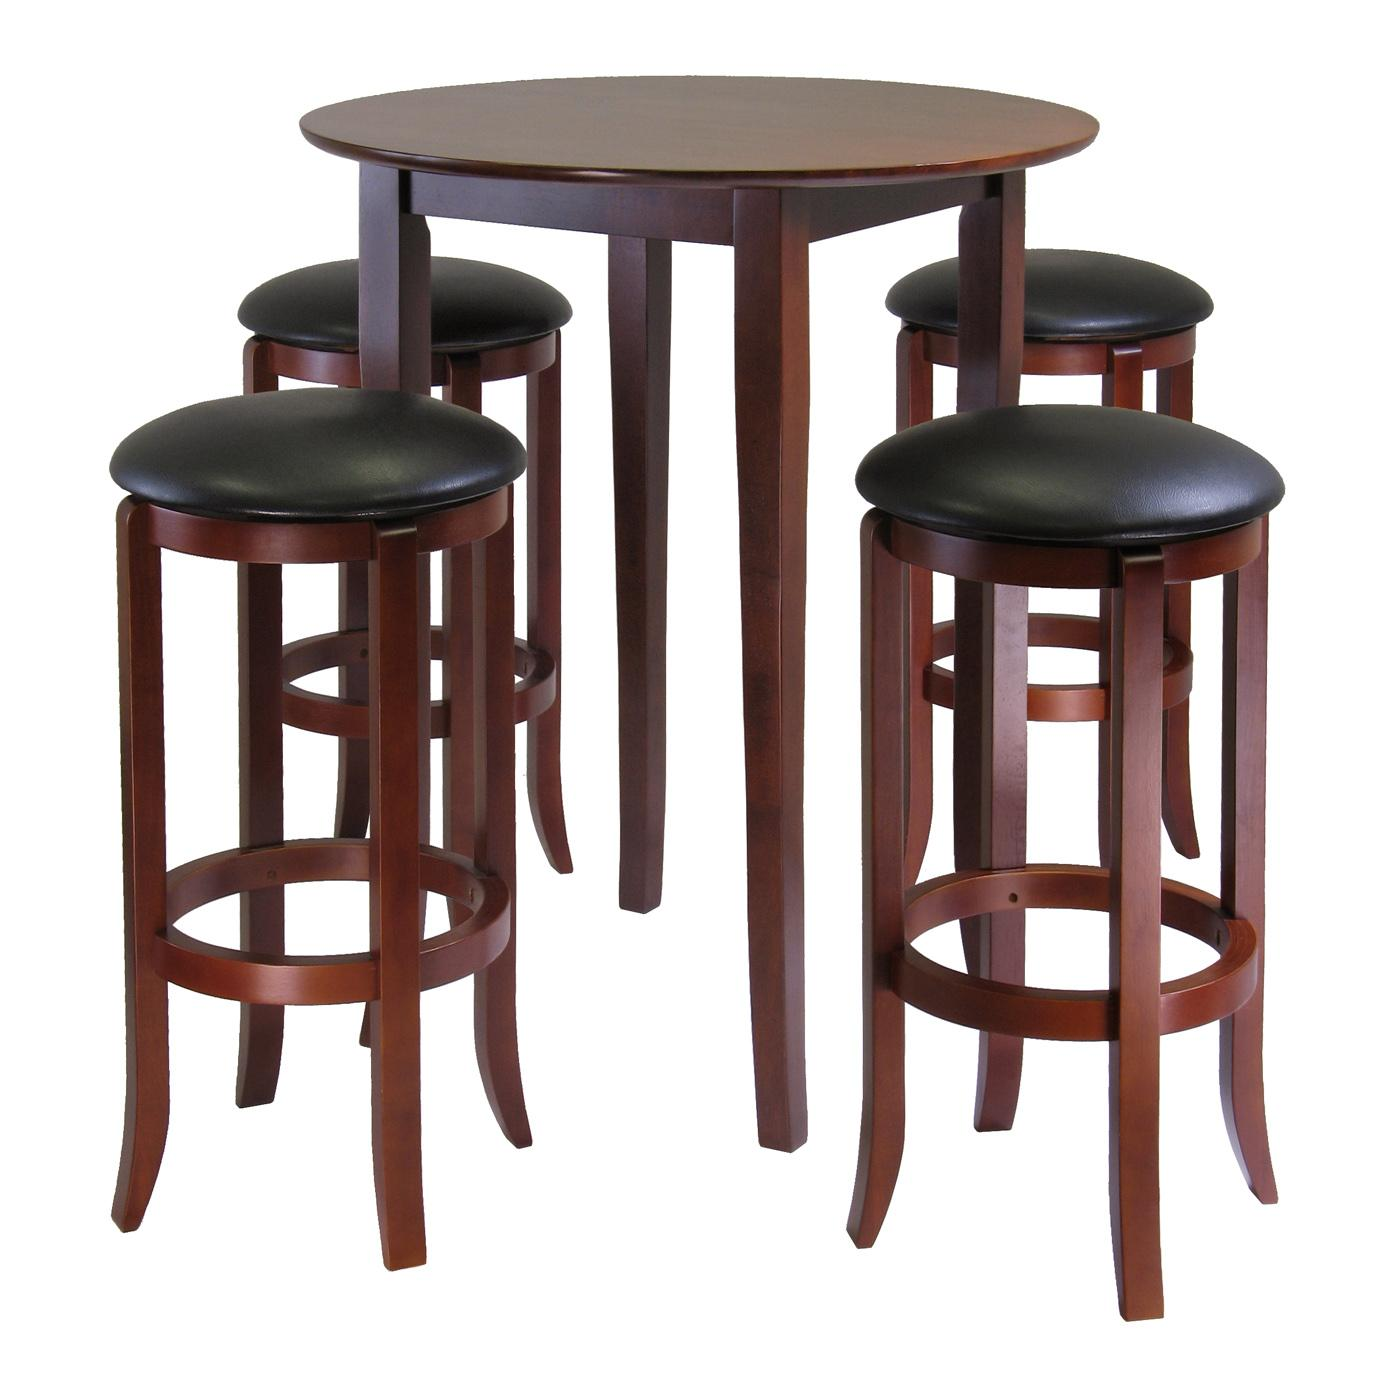 Winsome fiona 5 piece round high pub table set for Kitchen table and stools set